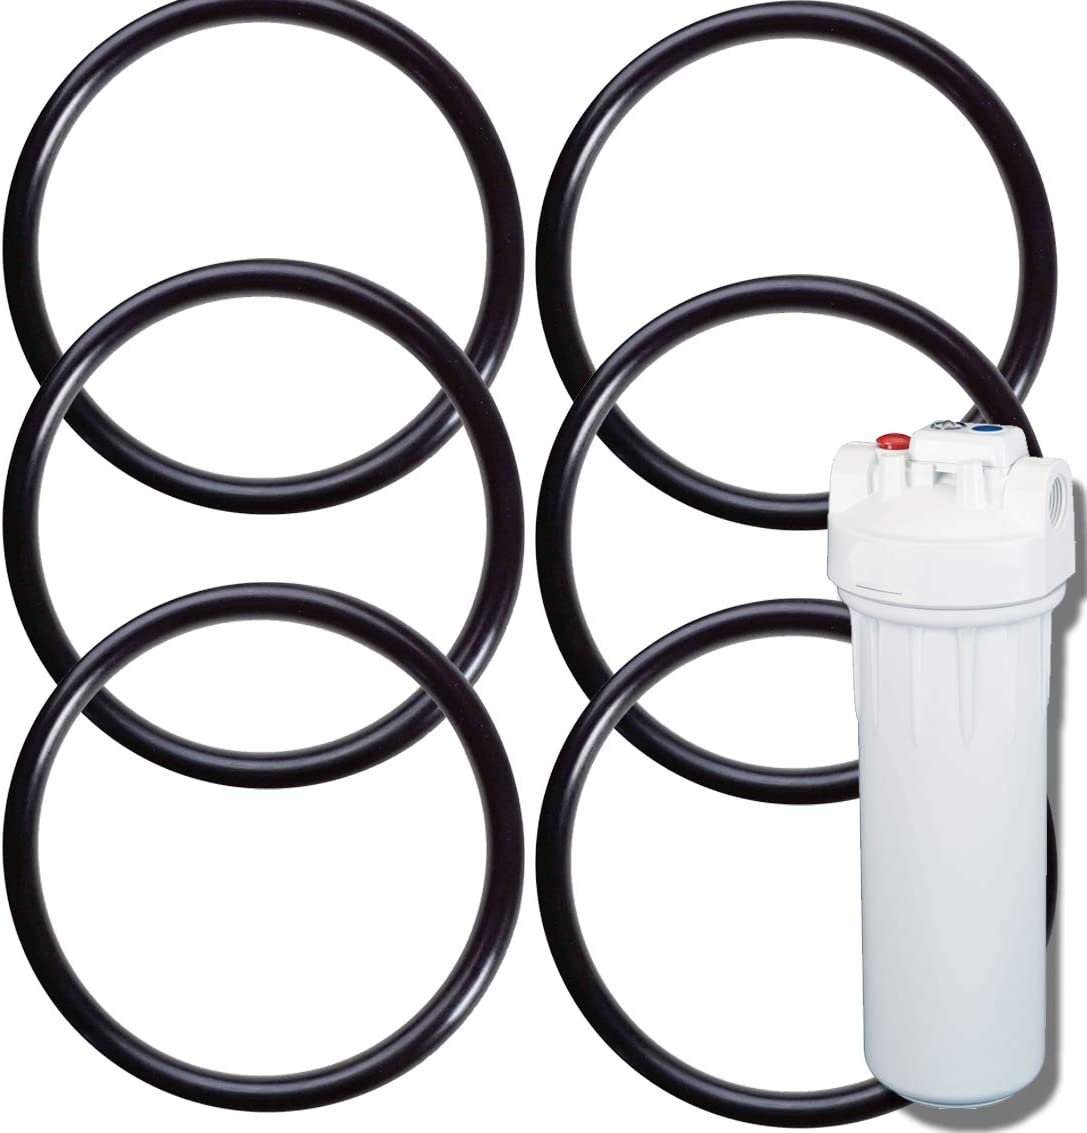 6-Pack of O-Rings for GE (TM) 2.5 Inch Water Filters - Compatible with GXWH20F, GXWH04F, GXRM10, GXWH20S and GX1S01R - Gaskets/O-Rings/Seals by Impresa Products